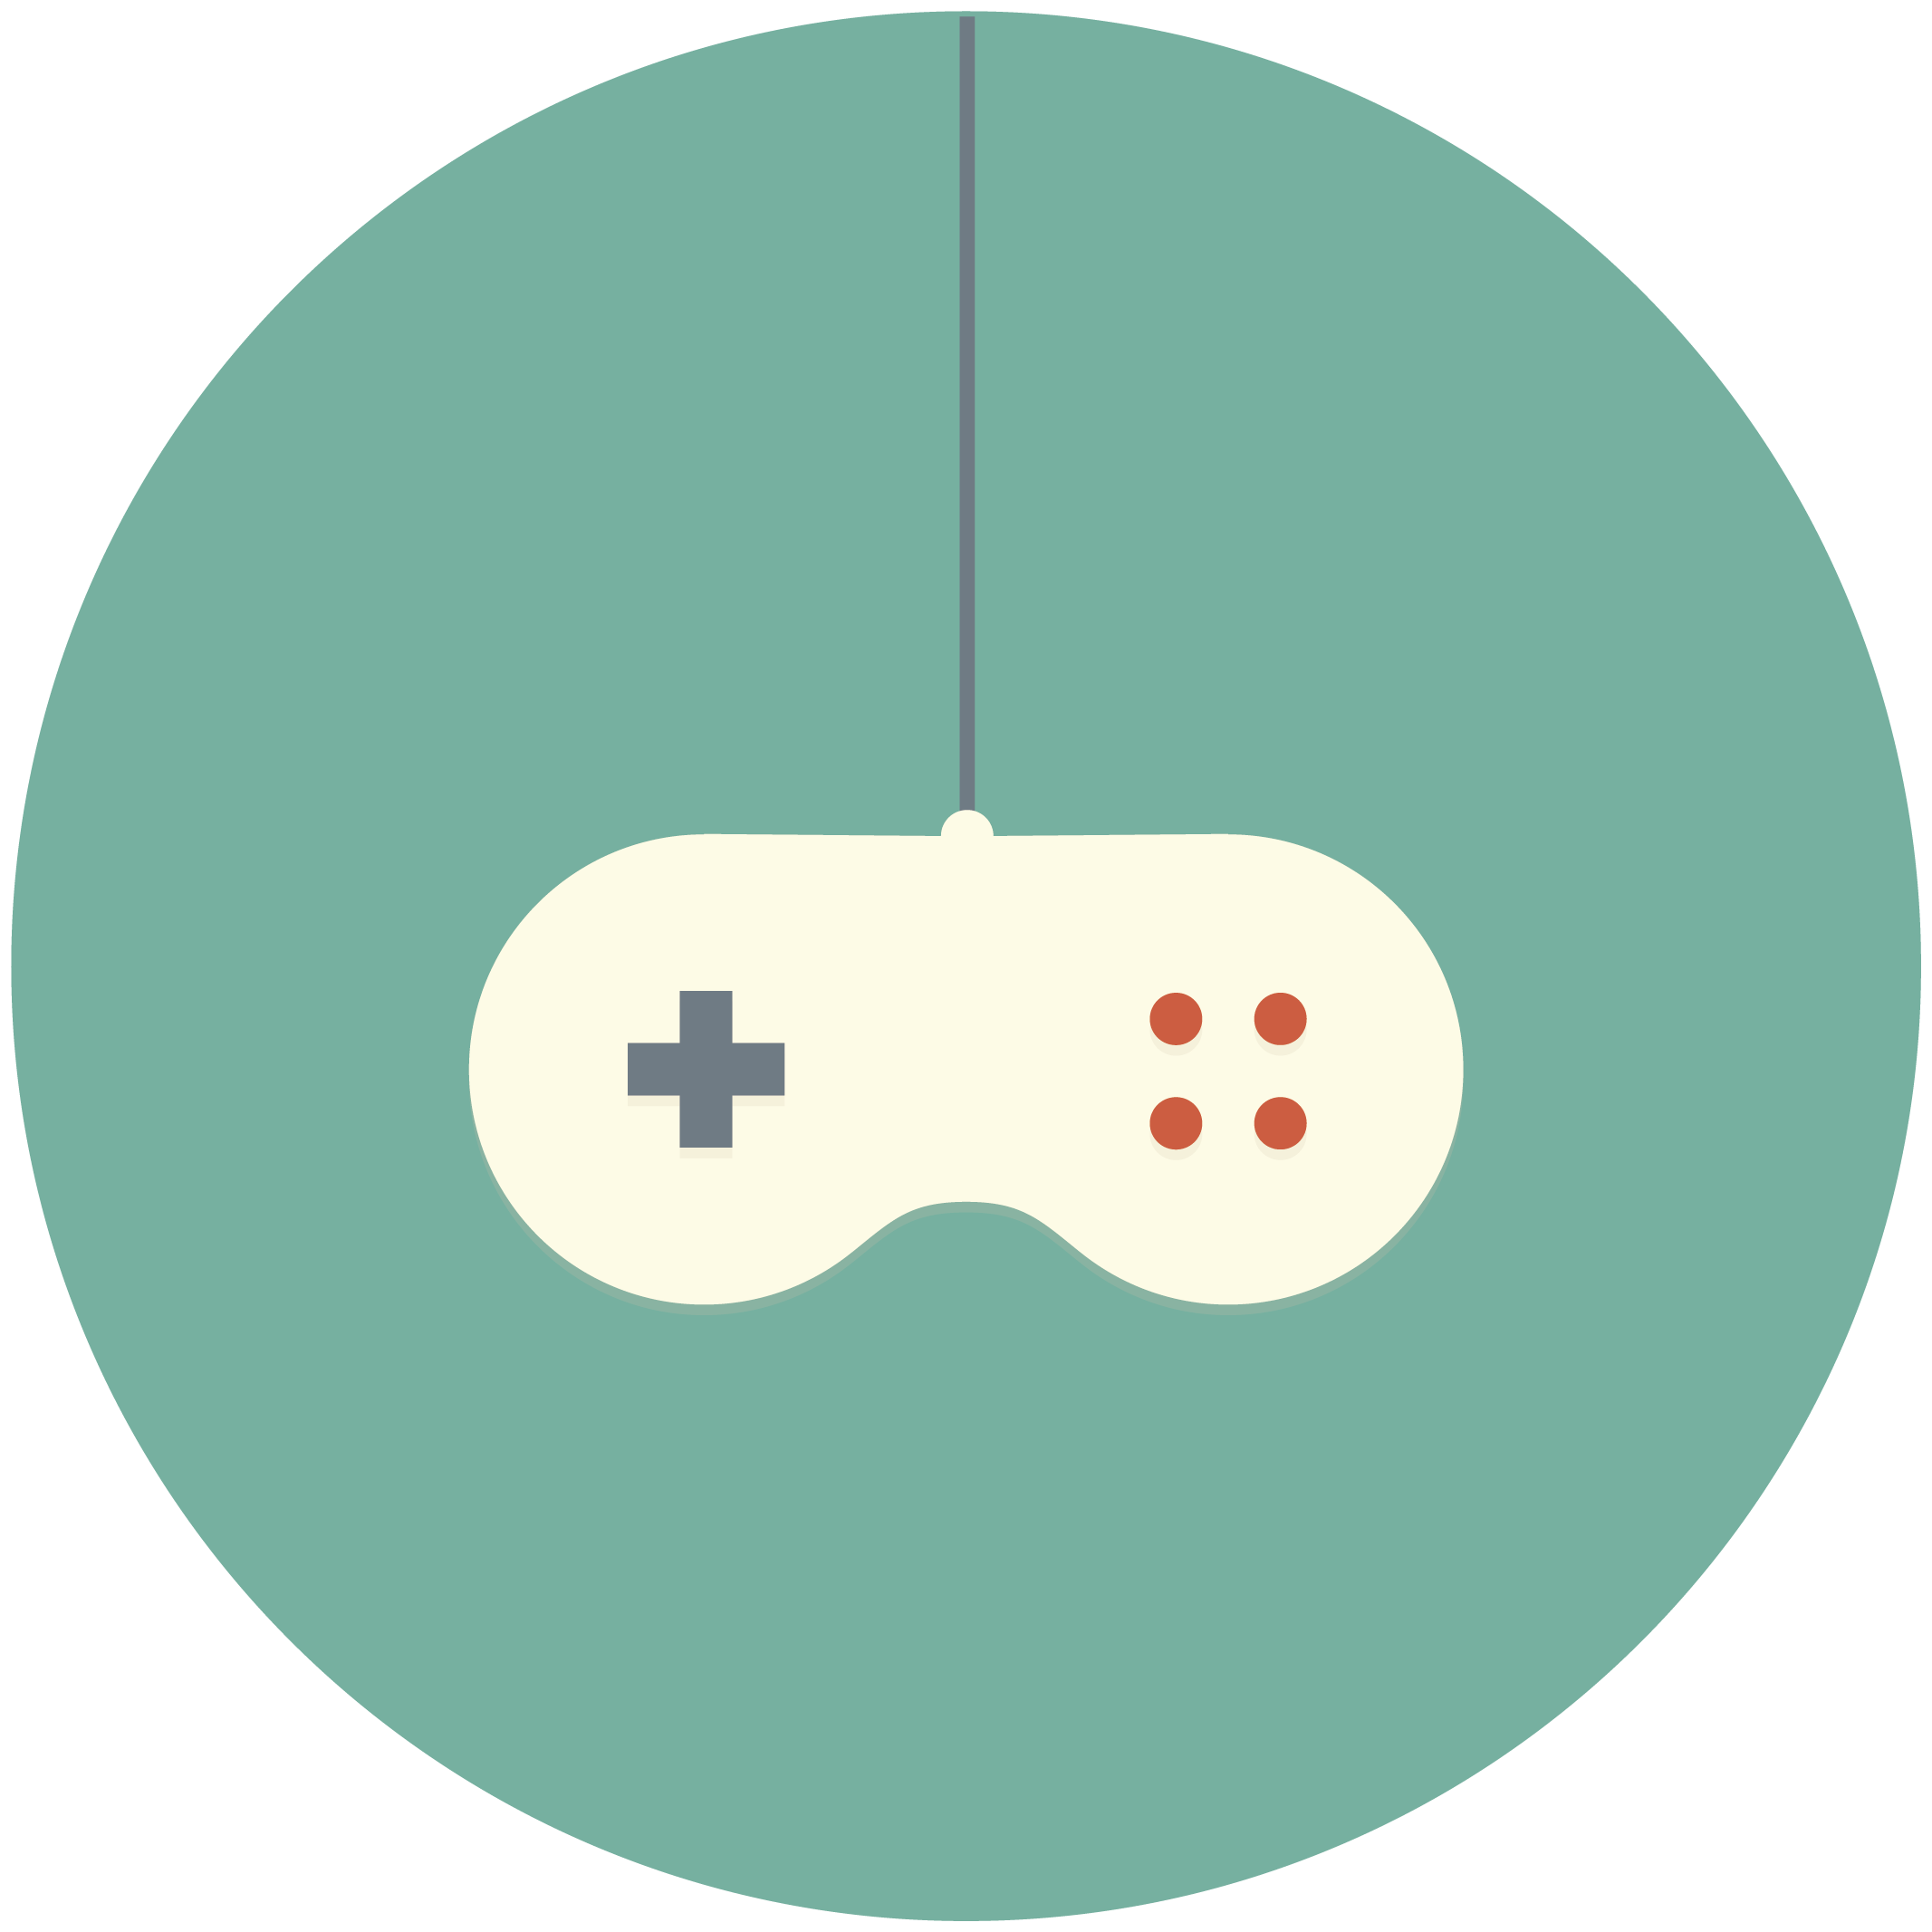 Control, Game, Play, Player Icon  image #4496